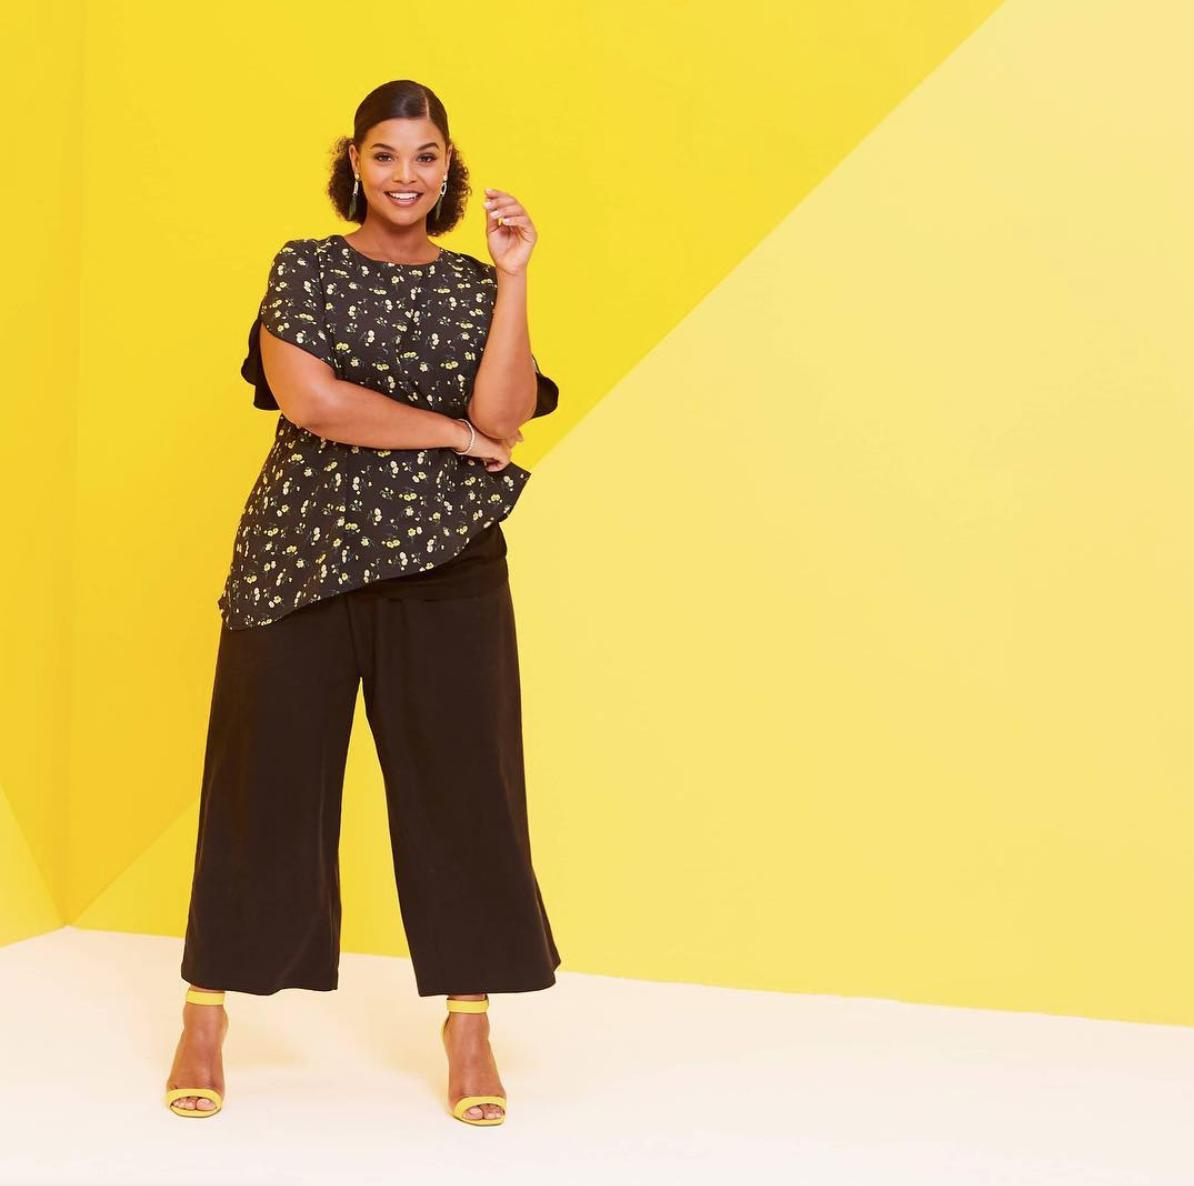 Culottes for the win this summer from @Curvissa ☀️ #curvecrush https://t.co/O4o7LtvxQg